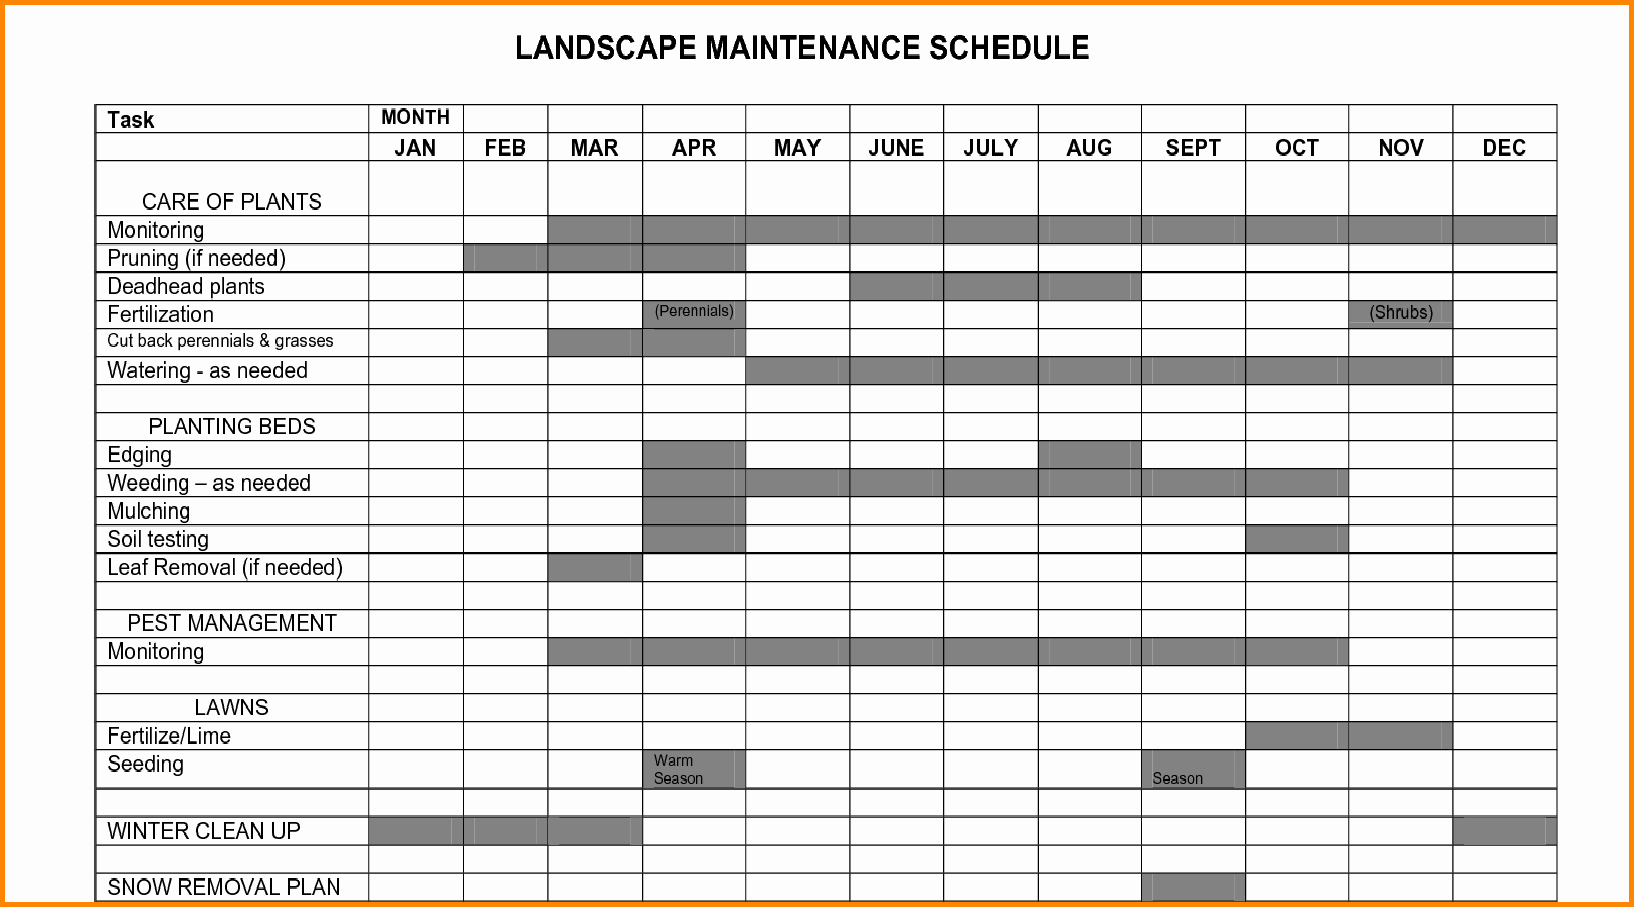 Equipment Maintenance Schedule Template Excel Best Of Plant Maintenance Schedule Template Excel – Printable